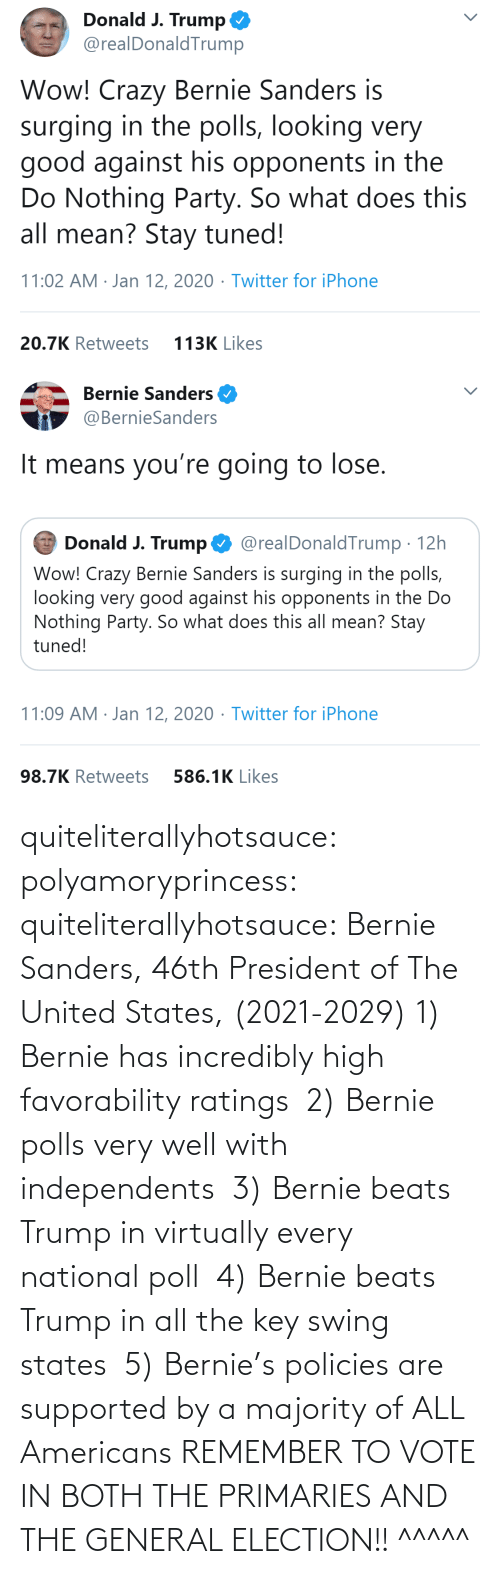 Incredibly: quiteliterallyhotsauce:  polyamoryprincess:  quiteliterallyhotsauce:   Bernie Sanders, 46th President of The United States, (2021-2029)    1) Bernie has incredibly high favorability ratings  2) Bernie polls very well with independents  3) Bernie beats Trump in virtually every national poll  4) Bernie beats Trump in all the key swing states  5) Bernie's policies are supported by a majority of ALL Americans    REMEMBER TO VOTE IN BOTH THE PRIMARIES AND THE GENERAL ELECTION!!  ^^^^^